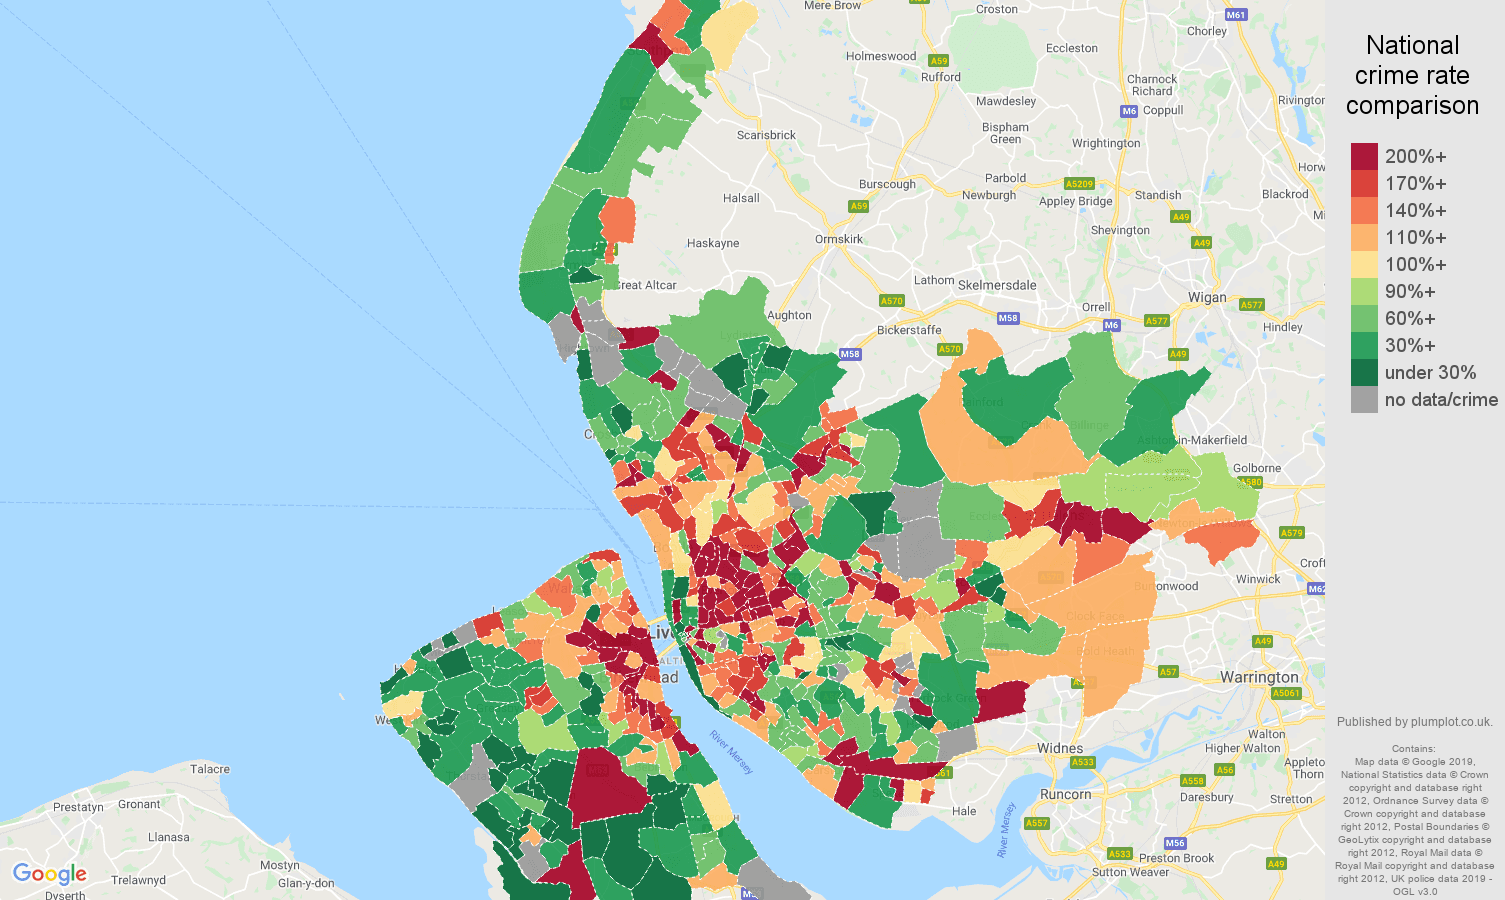 Merseyside public order crime rate comparison map